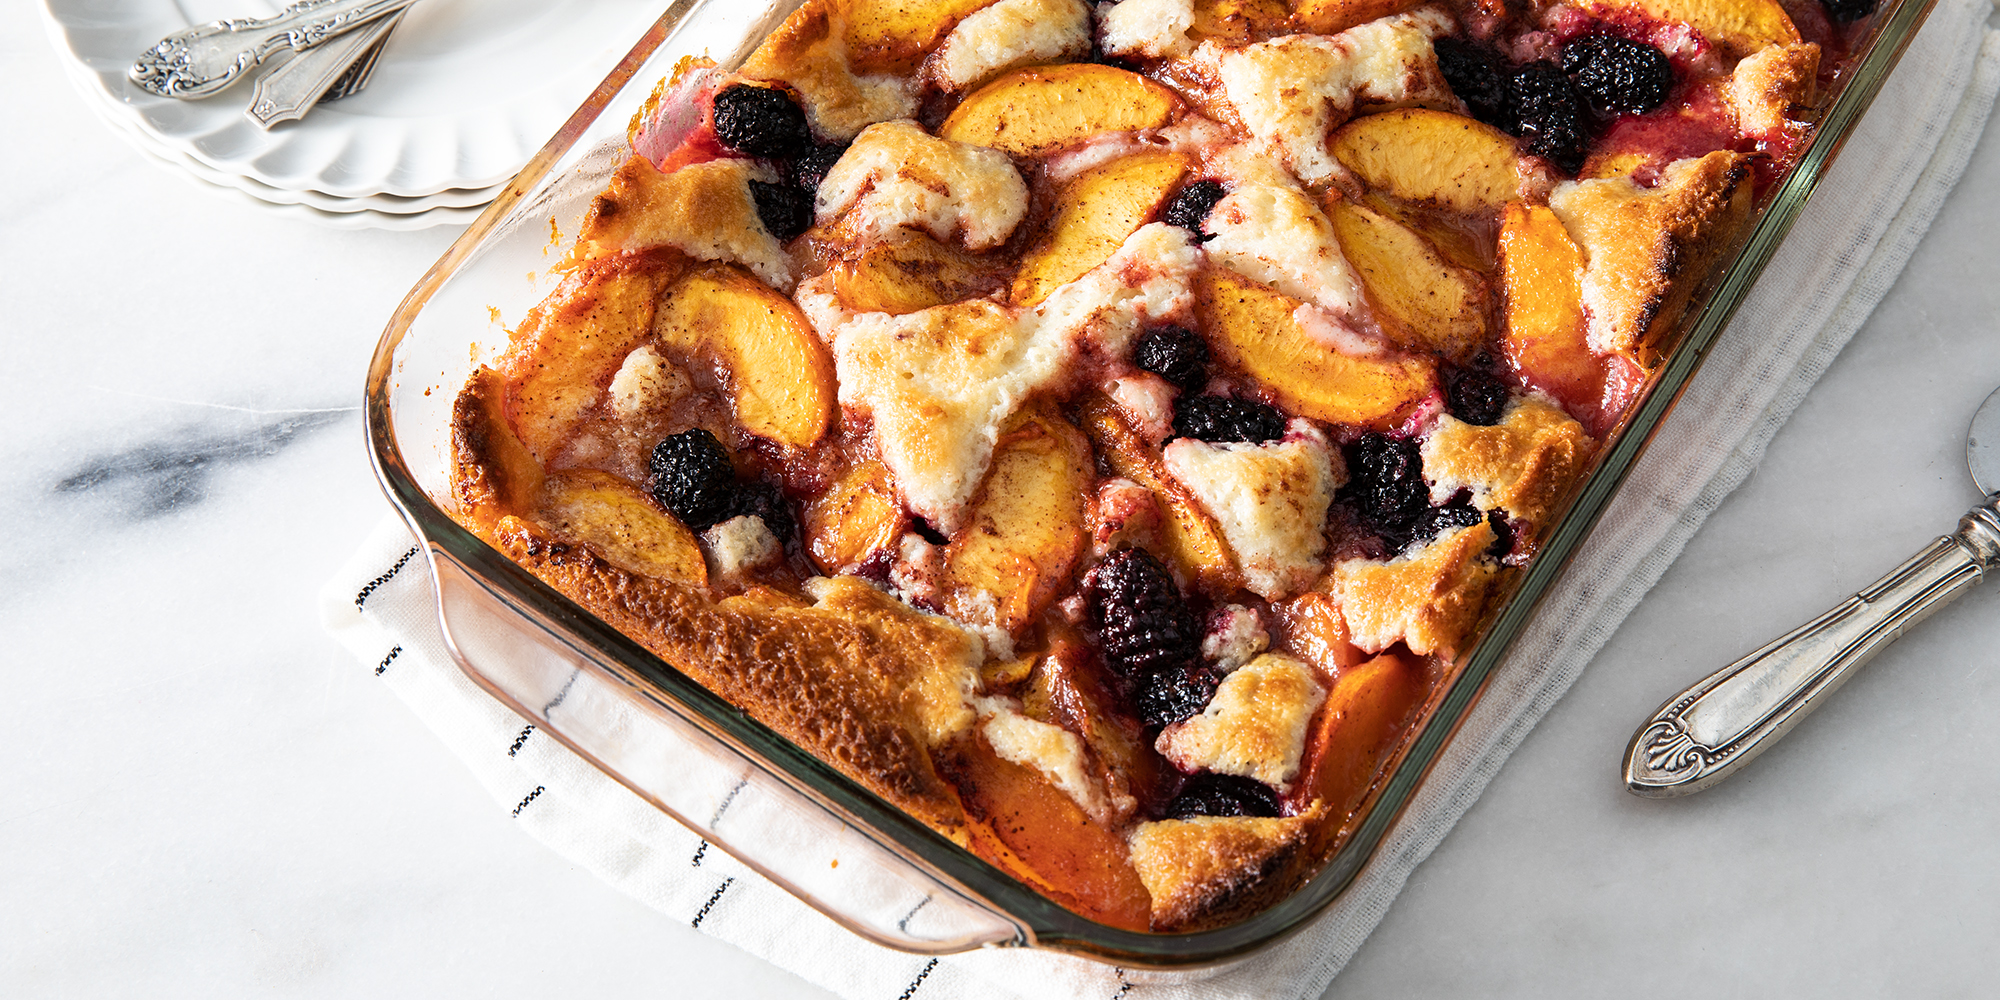 Looking down on a golden-brown peach and blackberry cobbler ready to be served.